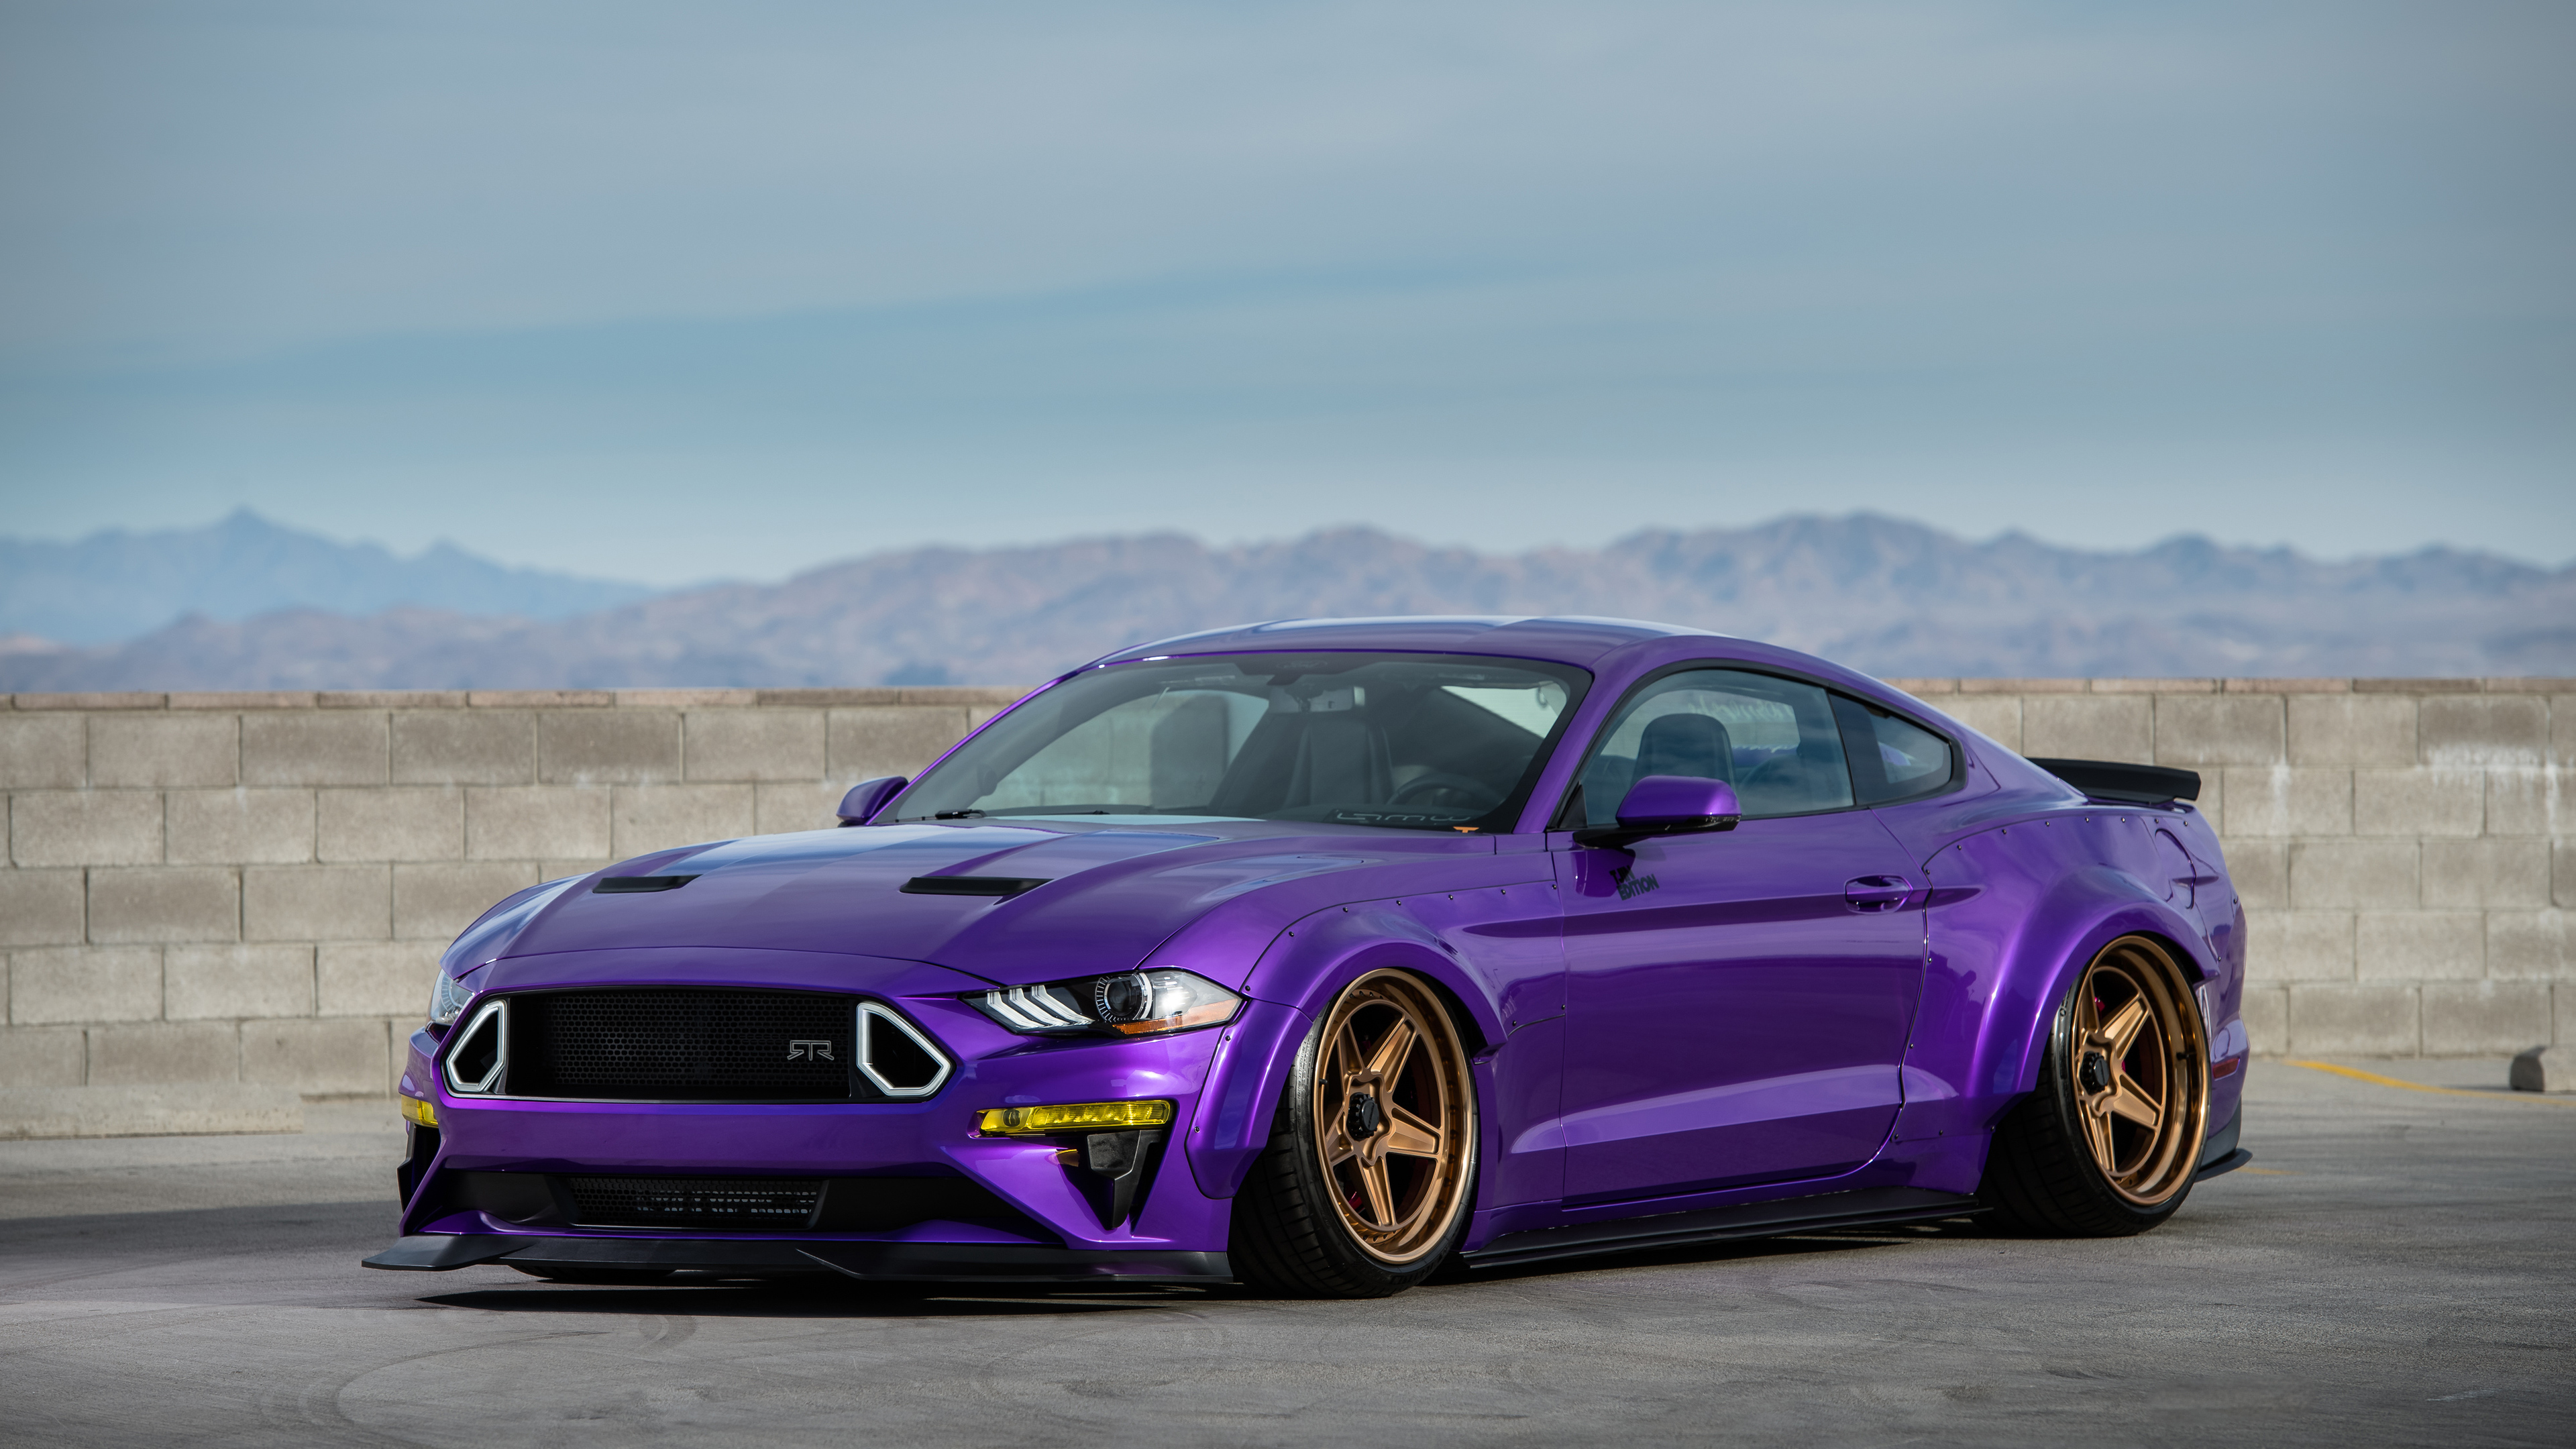 tjin edition ford mustang ecoboost 2018 1541969436 - TJIN Edition Ford Mustang EcoBoost 2018 - mustang wallpapers, hd-wallpapers, ford wallpapers, ford mustang wallpapers, 4k-wallpapers, 2018 cars wallpapers